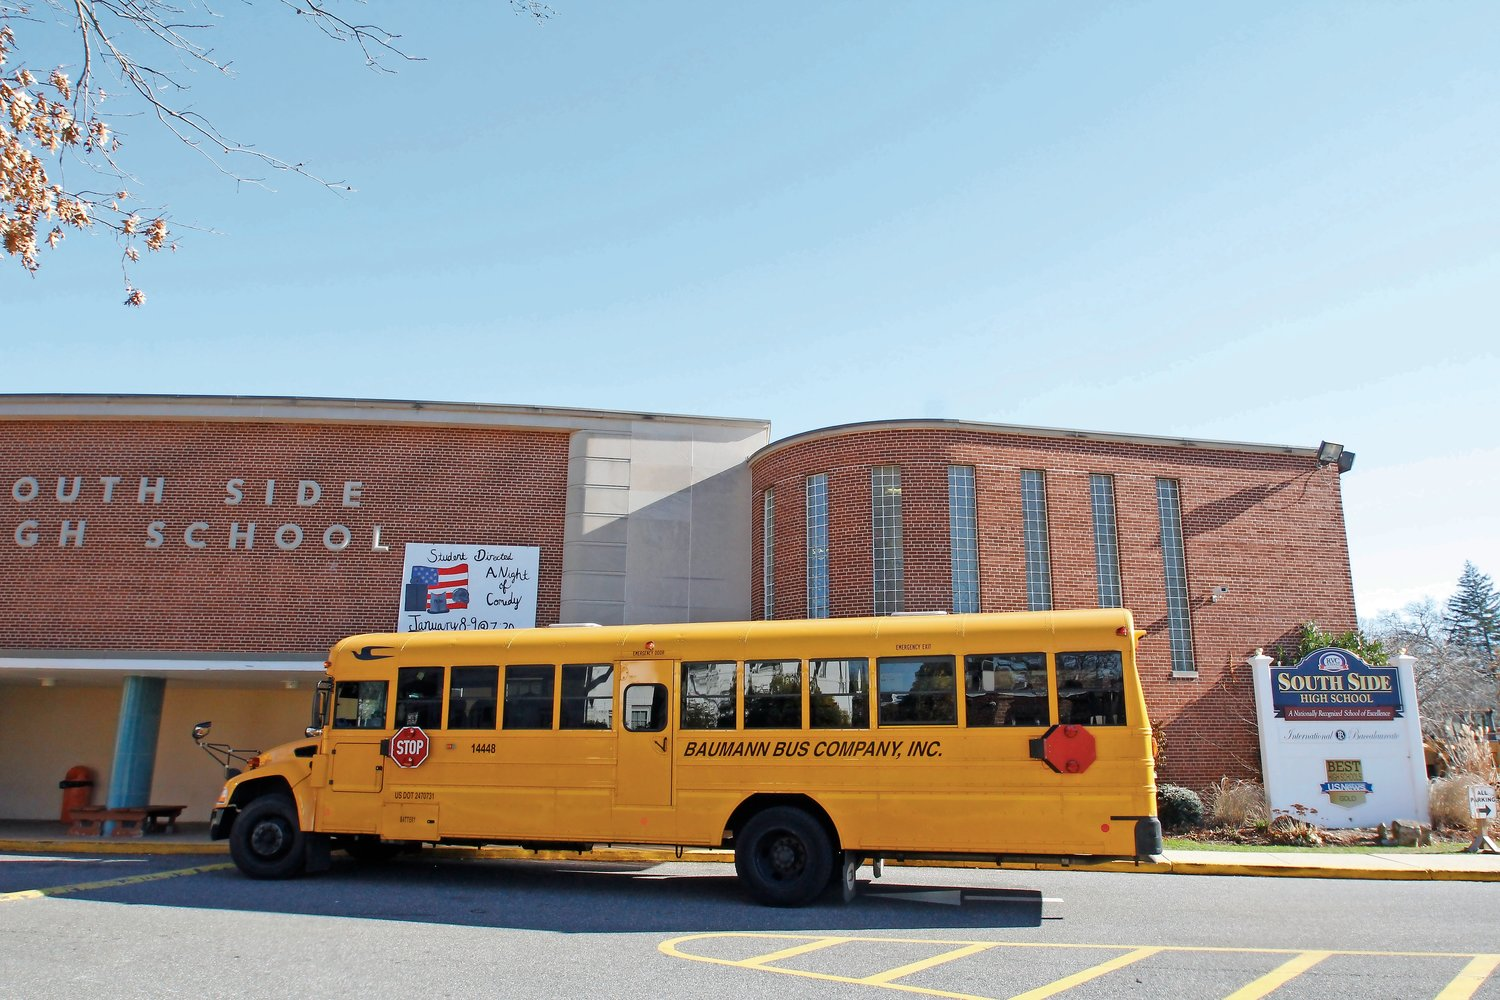 As part of the New York State Smart Schools Bond Act, the Rockville Centre School District received about $942,000 for security upgrades.